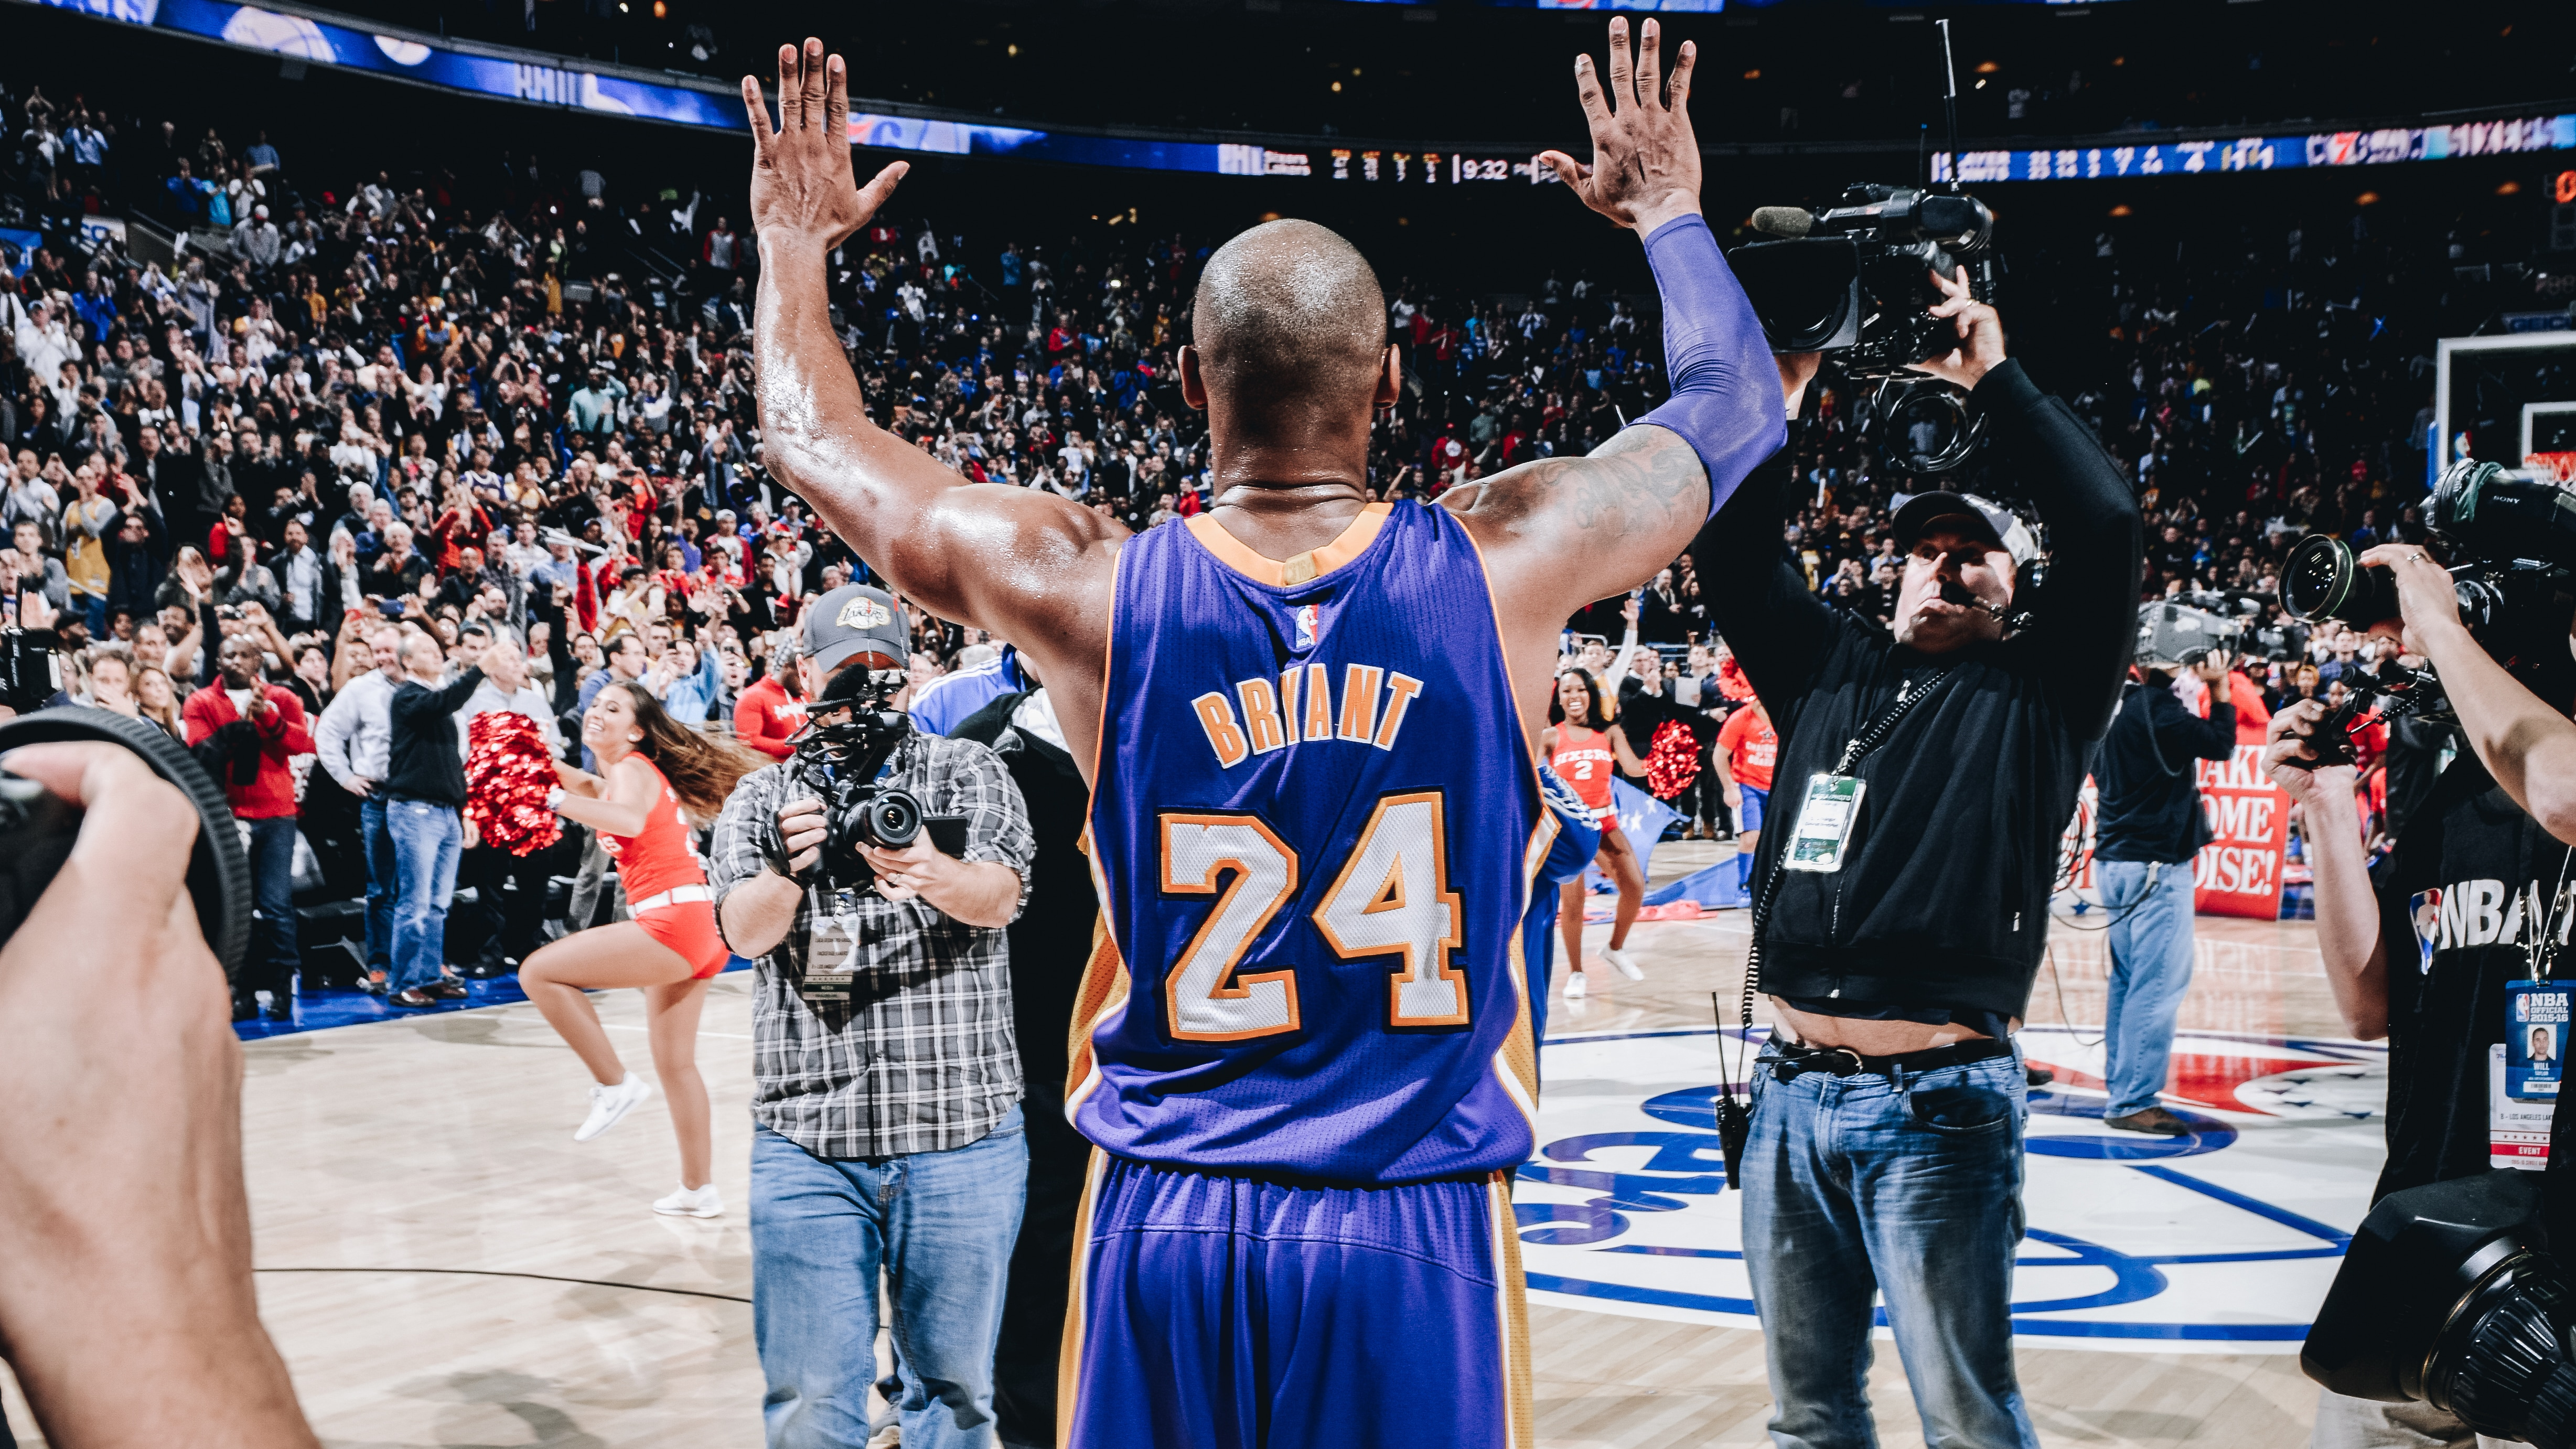 Kobe bryant's great legacy includes a sexual assault allegation, critics point out